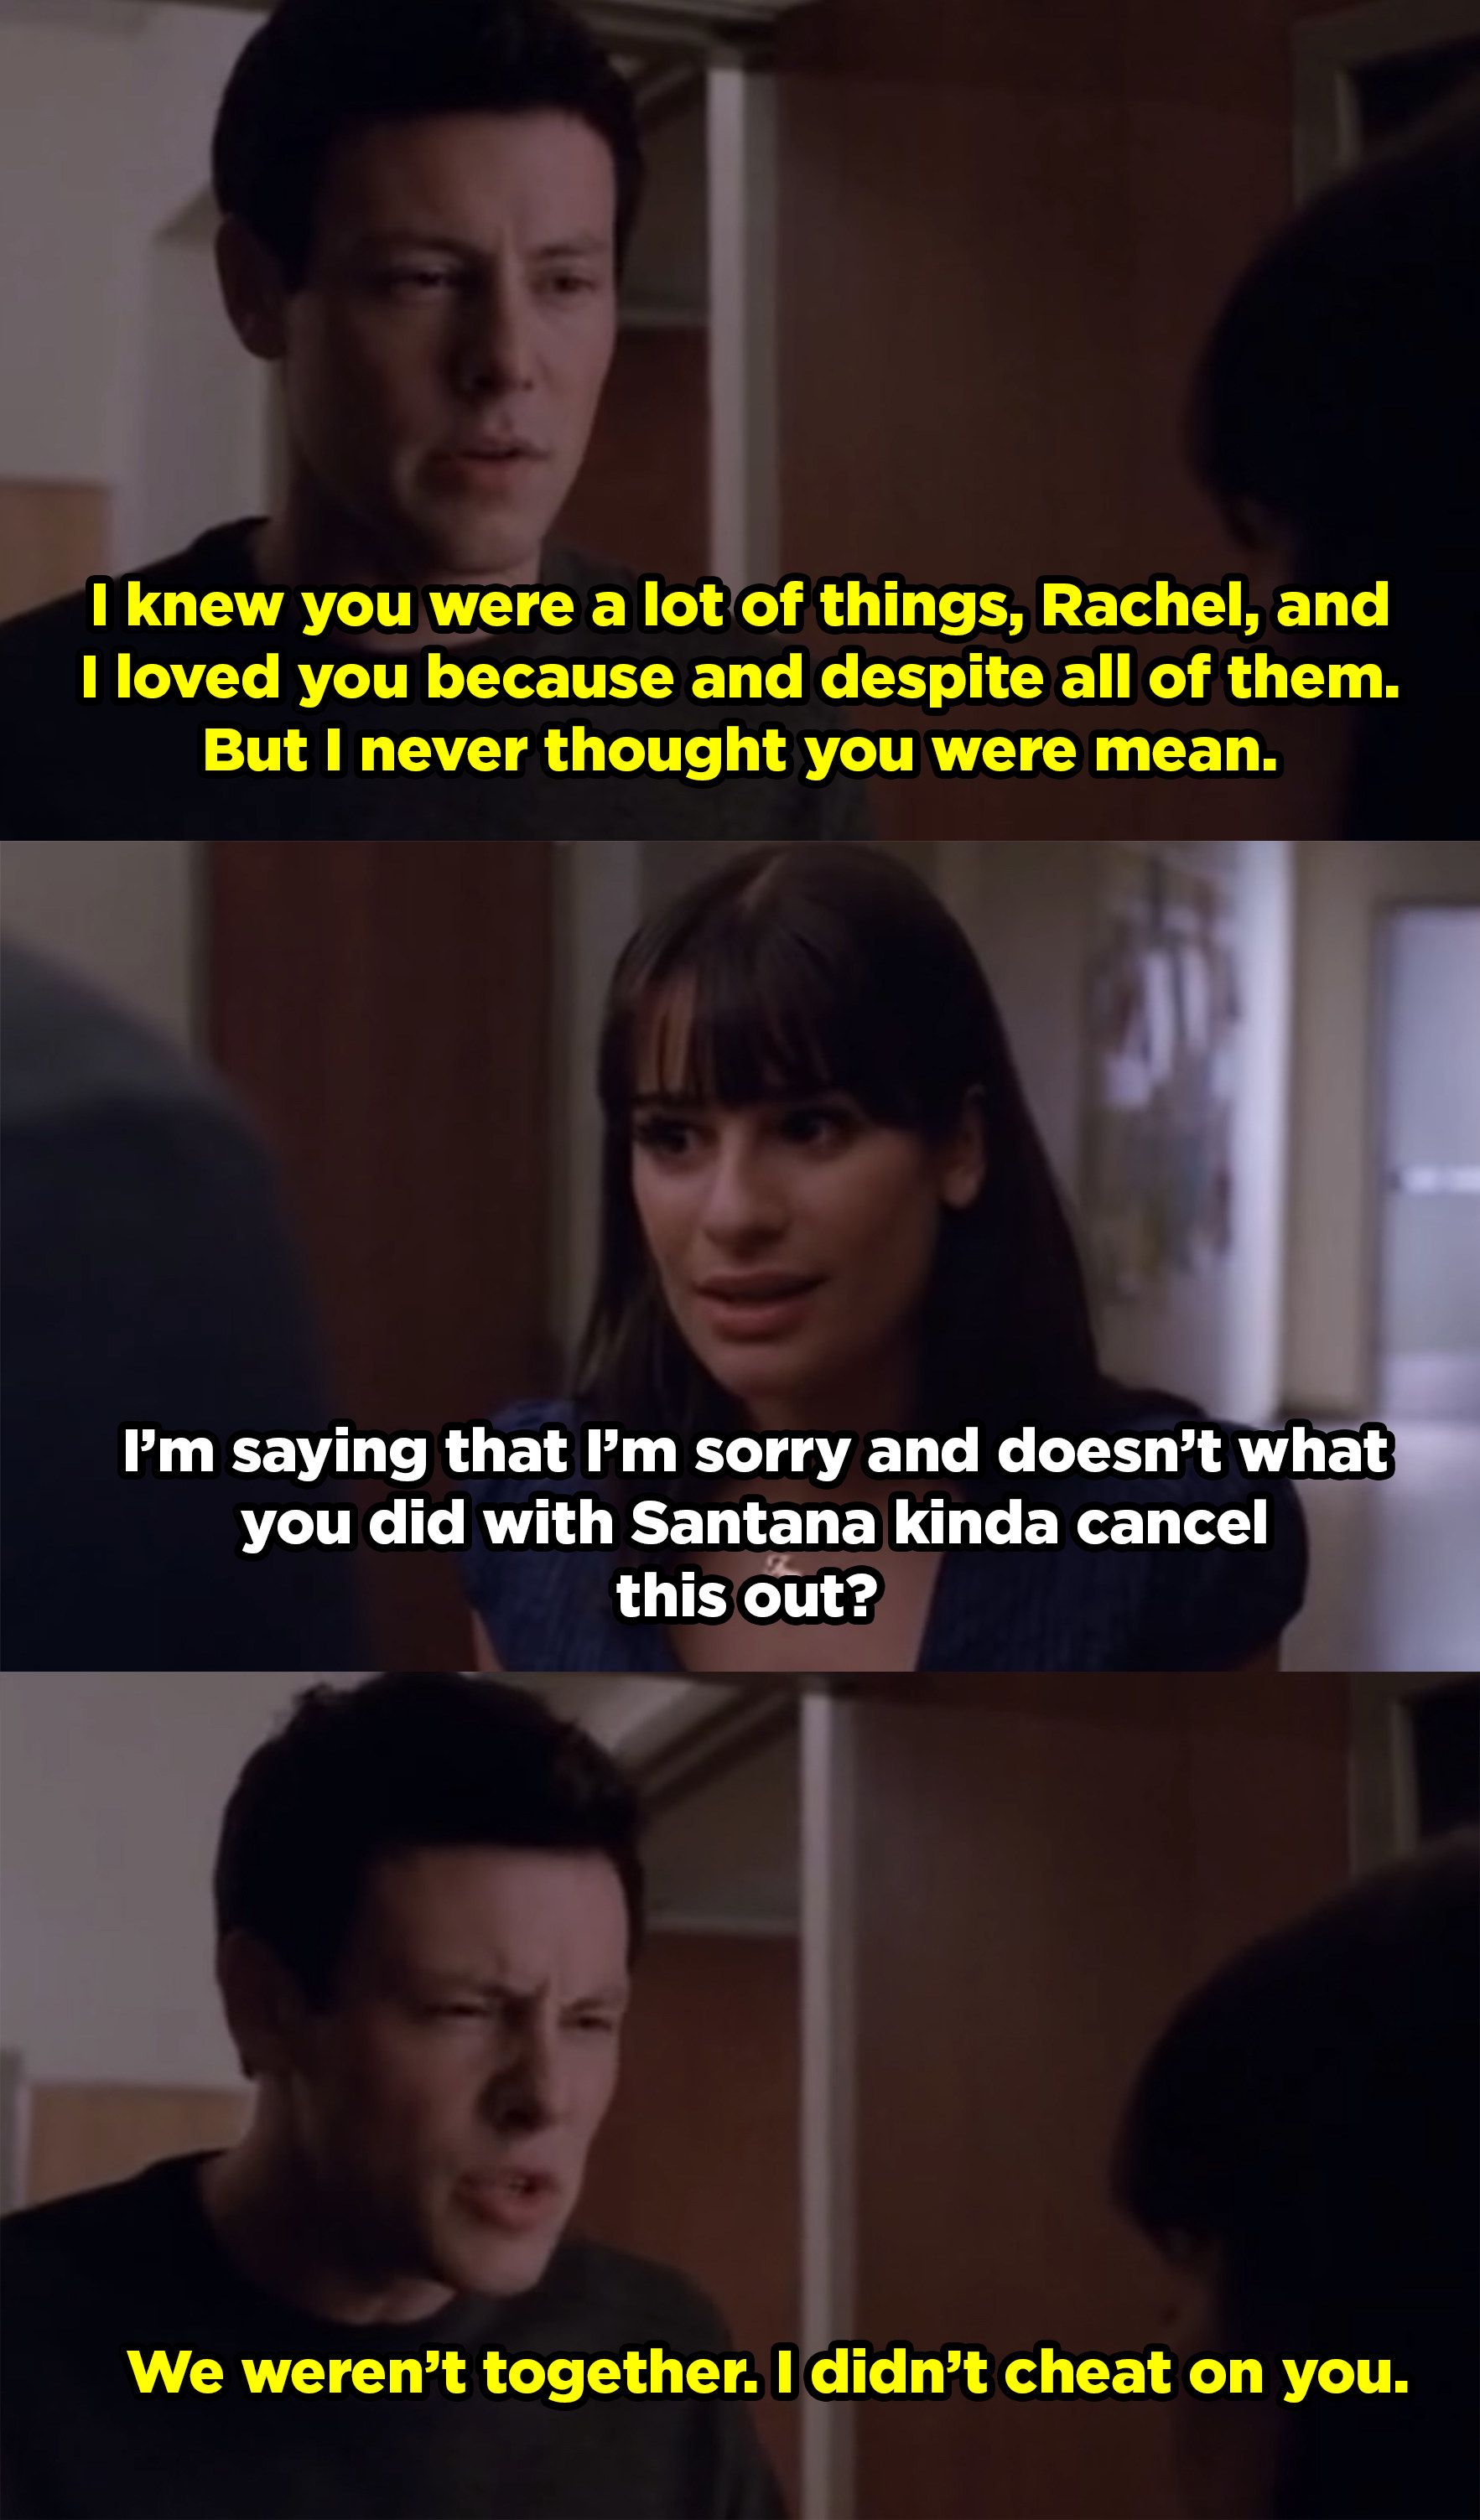 Finn telling Rachel he never thought she was mean. She responds by saying she thinks her sleeping with someone else cancels out what he did, but Finn says it doesn't because he never cheated on her.